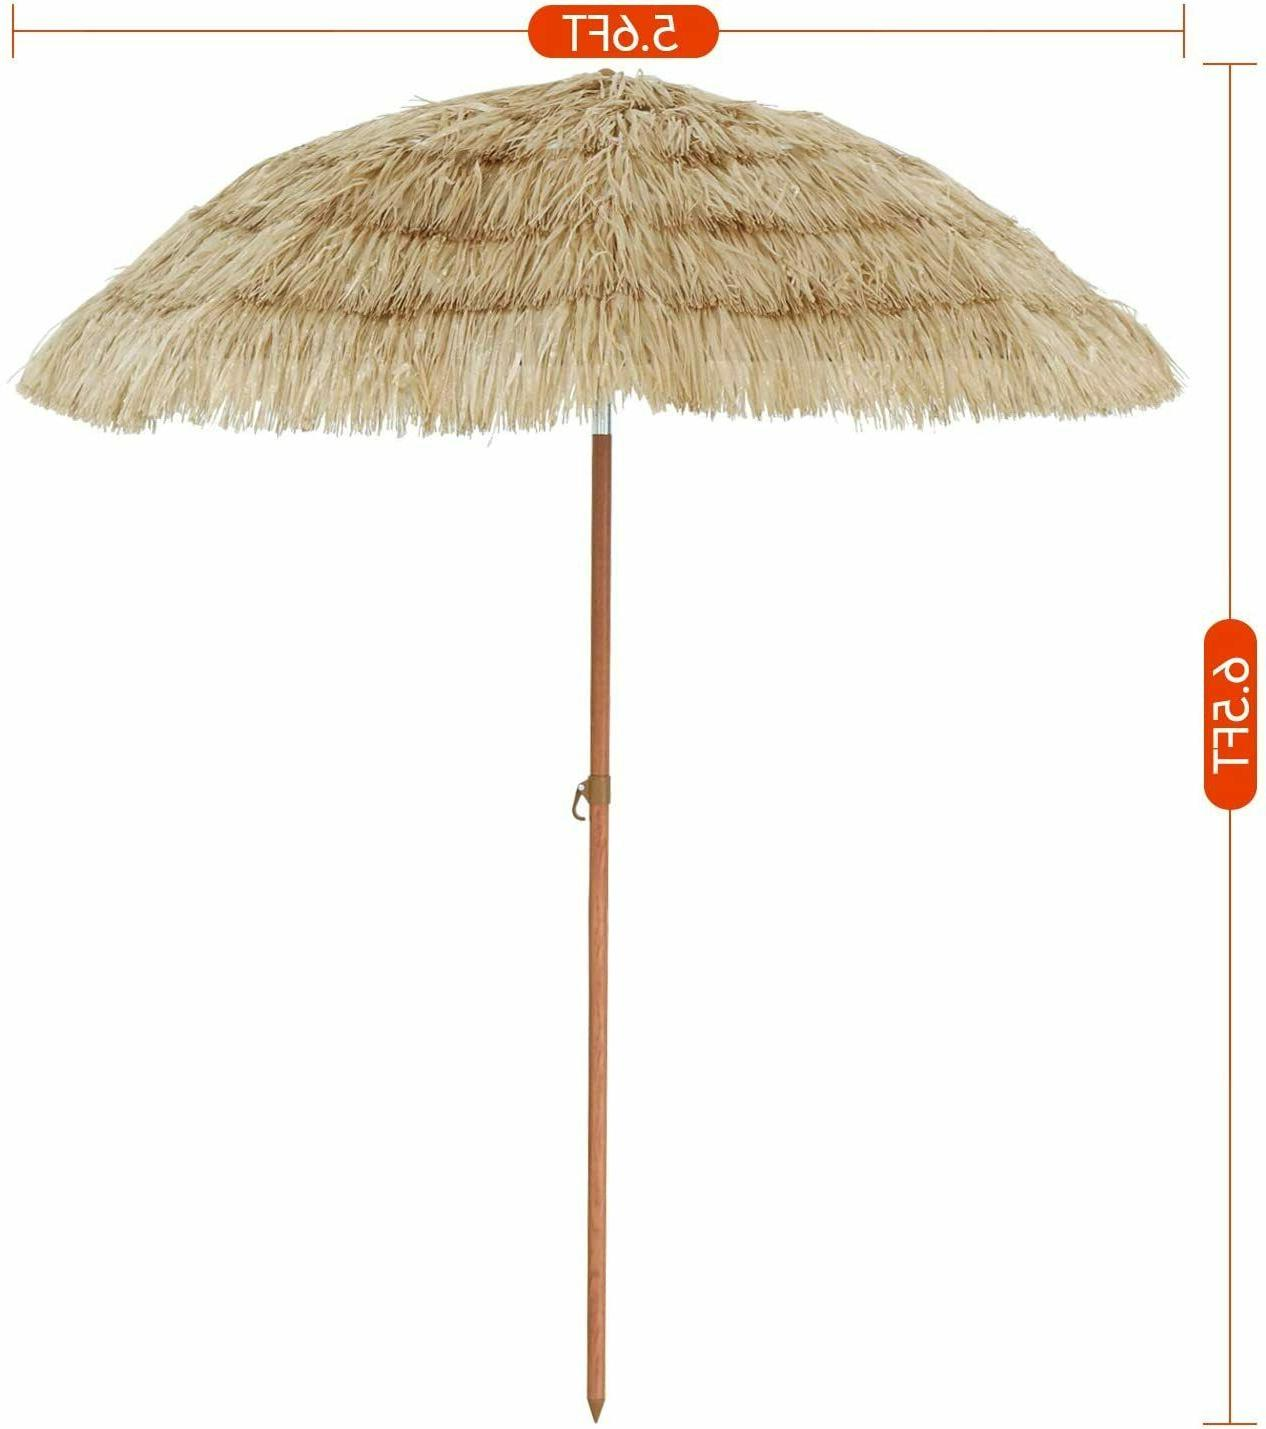 Thatched Beach 6ft Pool Hawaiian Tropical Umbrella